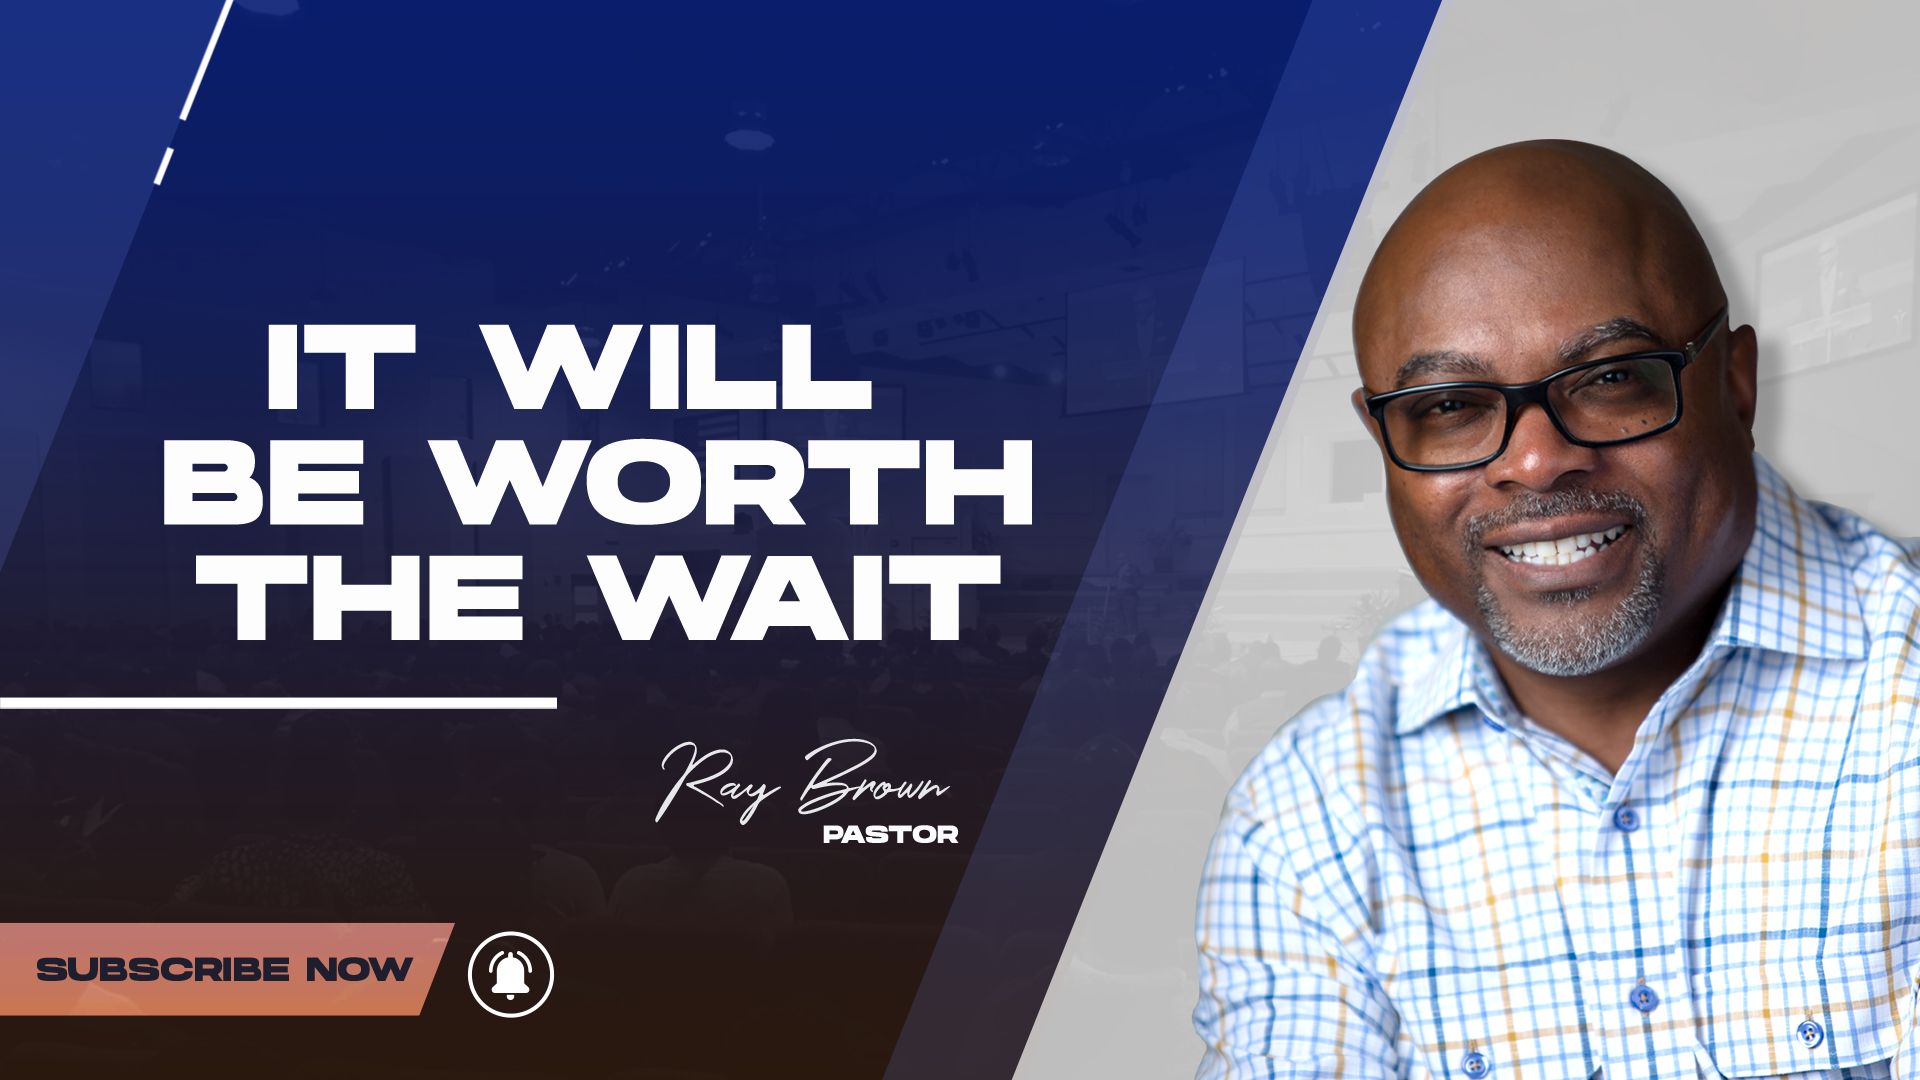 041821 it will be worth the wait